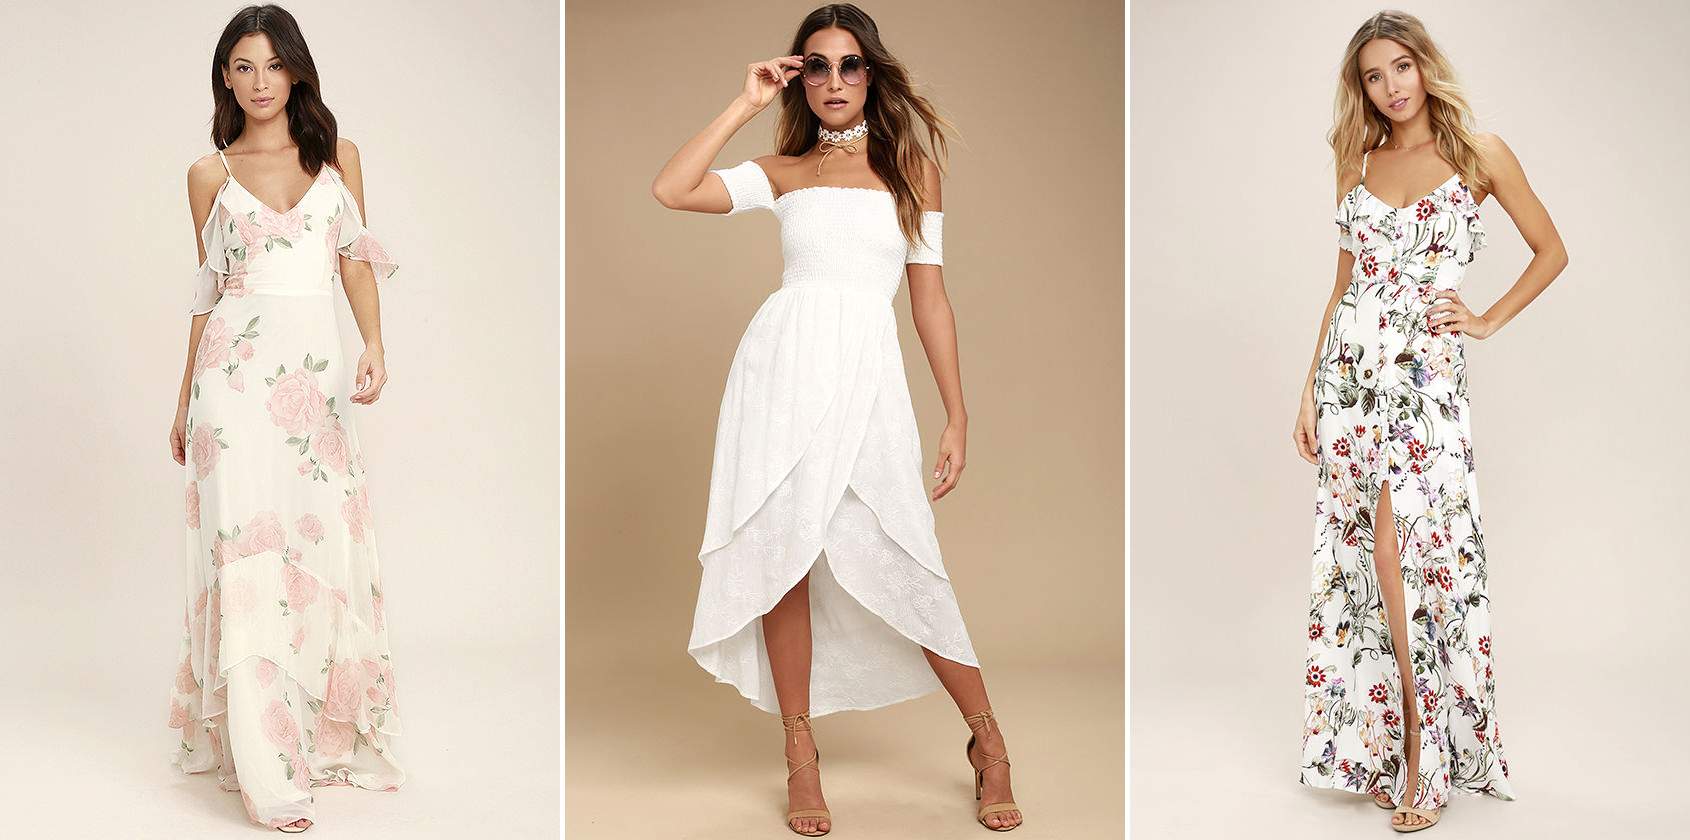 6d01fea5bed What to Wear to A Bridal Shower - Bride OR Guest Outfits